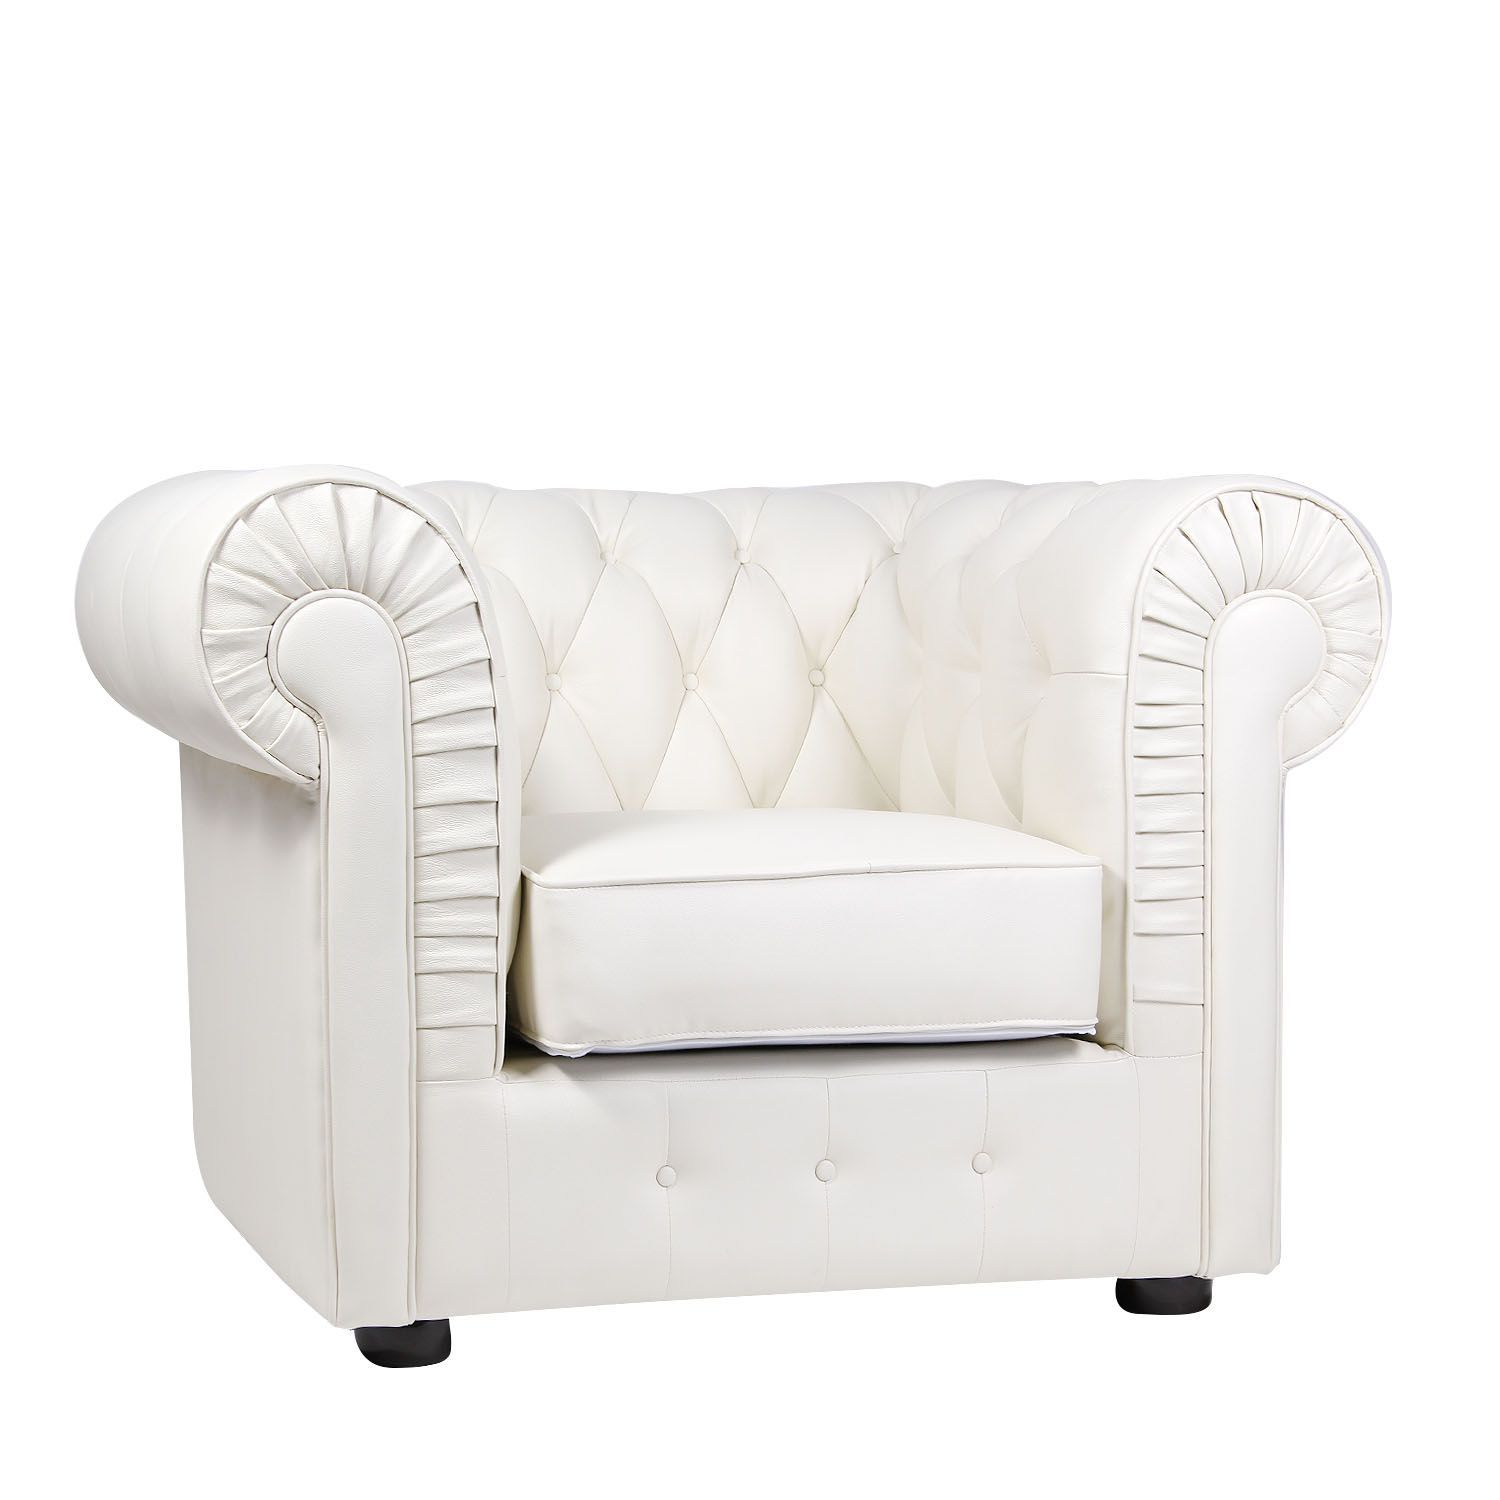 Sof Chester 1 Plaza Limited Edition Sof S Chesterfield  # Muebles Marieta